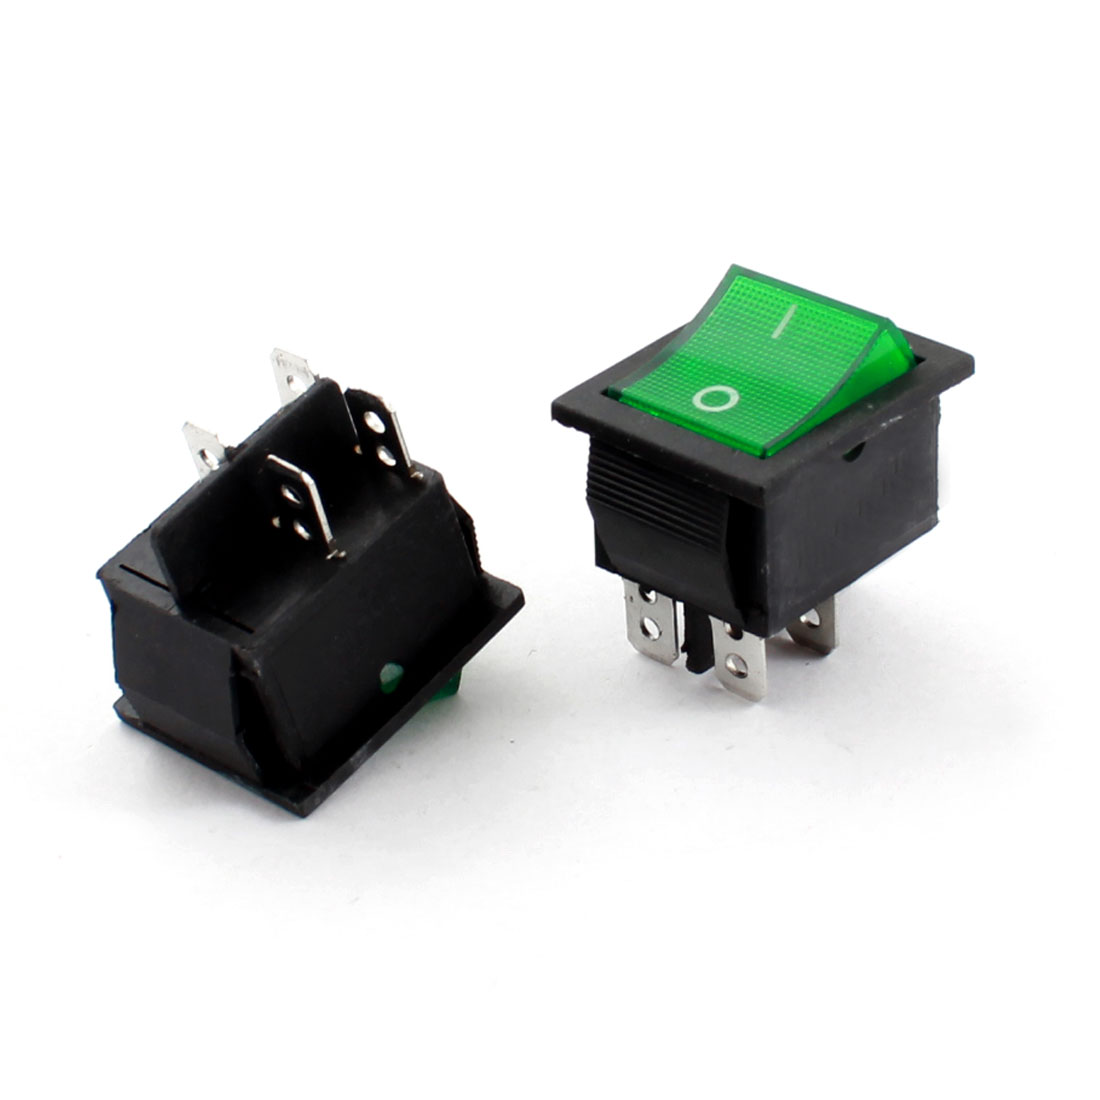 2 Pcs Electric KCD-102 Green Light 4 Contact Terminal DPST On/Off Boat Rocker Switch AC 220V 5A